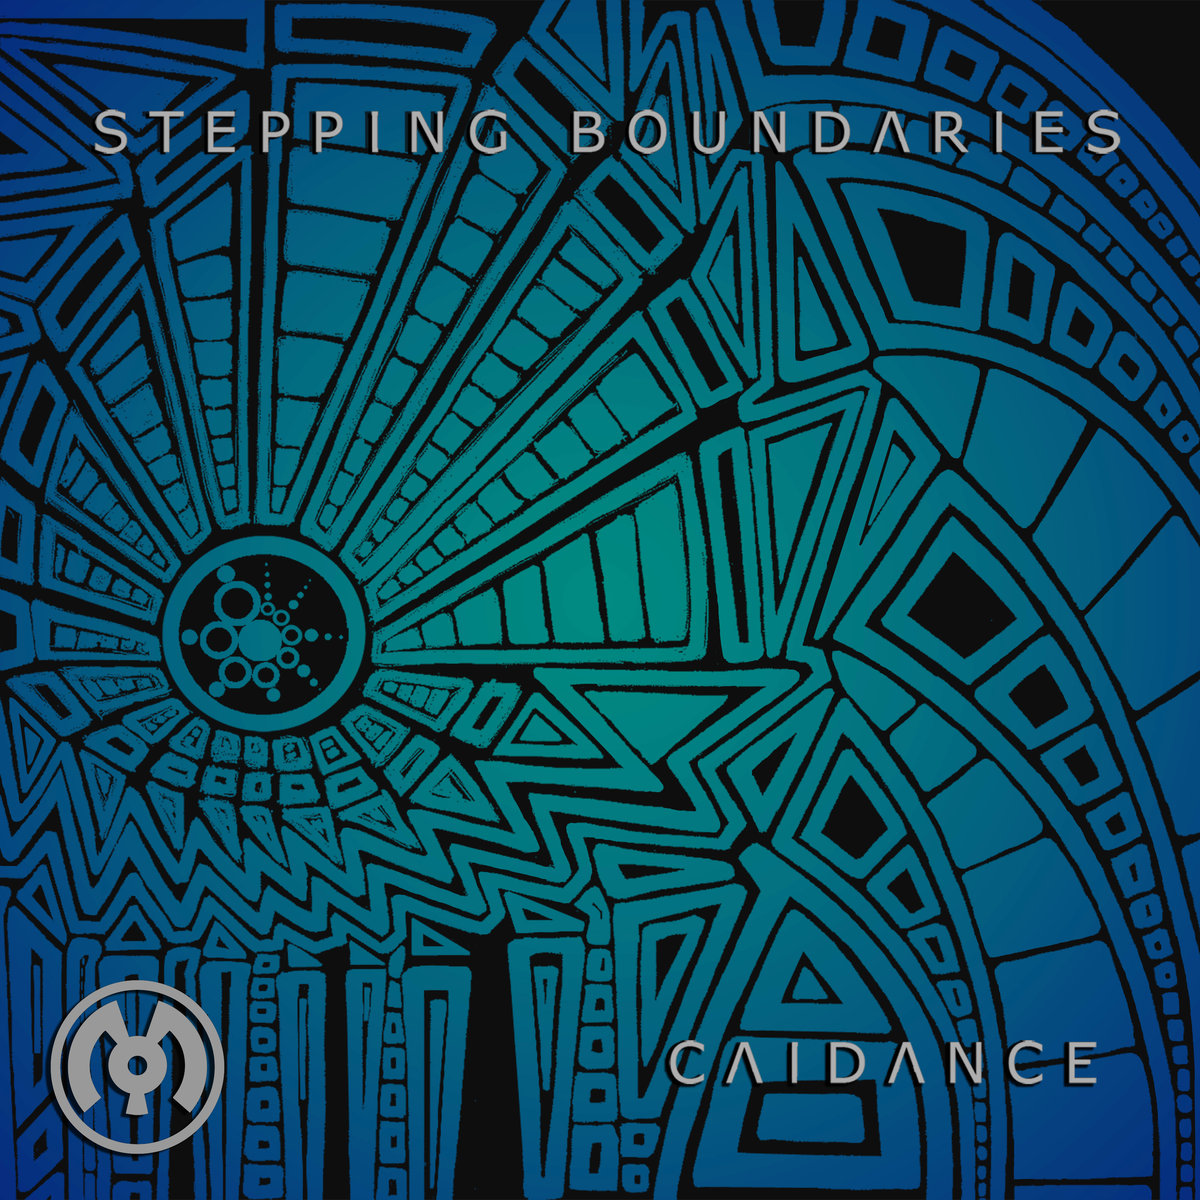 Caidance feat. Elly Martinez - Sleepwalking (Wisemind Remix) @ 'Stepping Boundaries' album (electronic, dubstep)